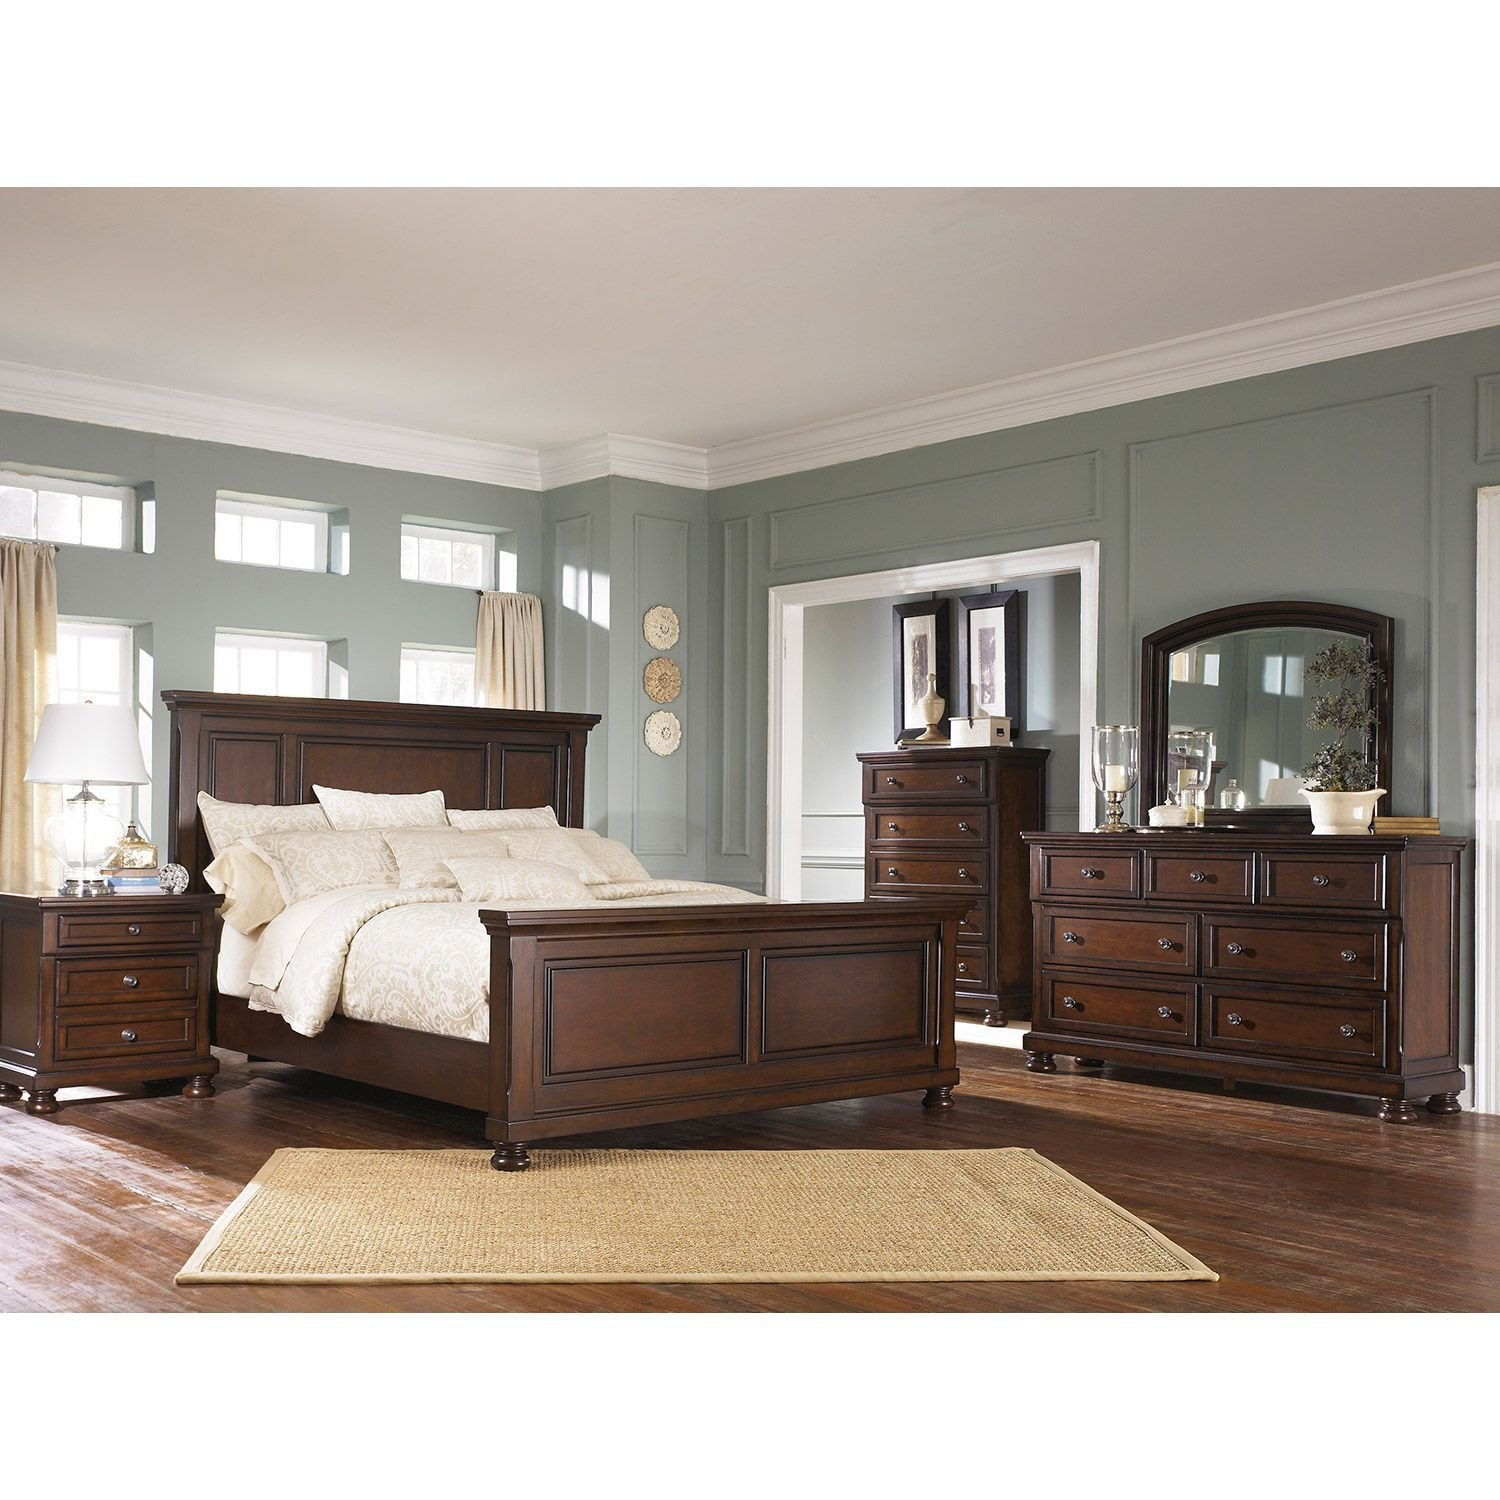 Low Price Bedroom Set Beautiful Porter 5 Piece Bedroom Set B697 5pcset